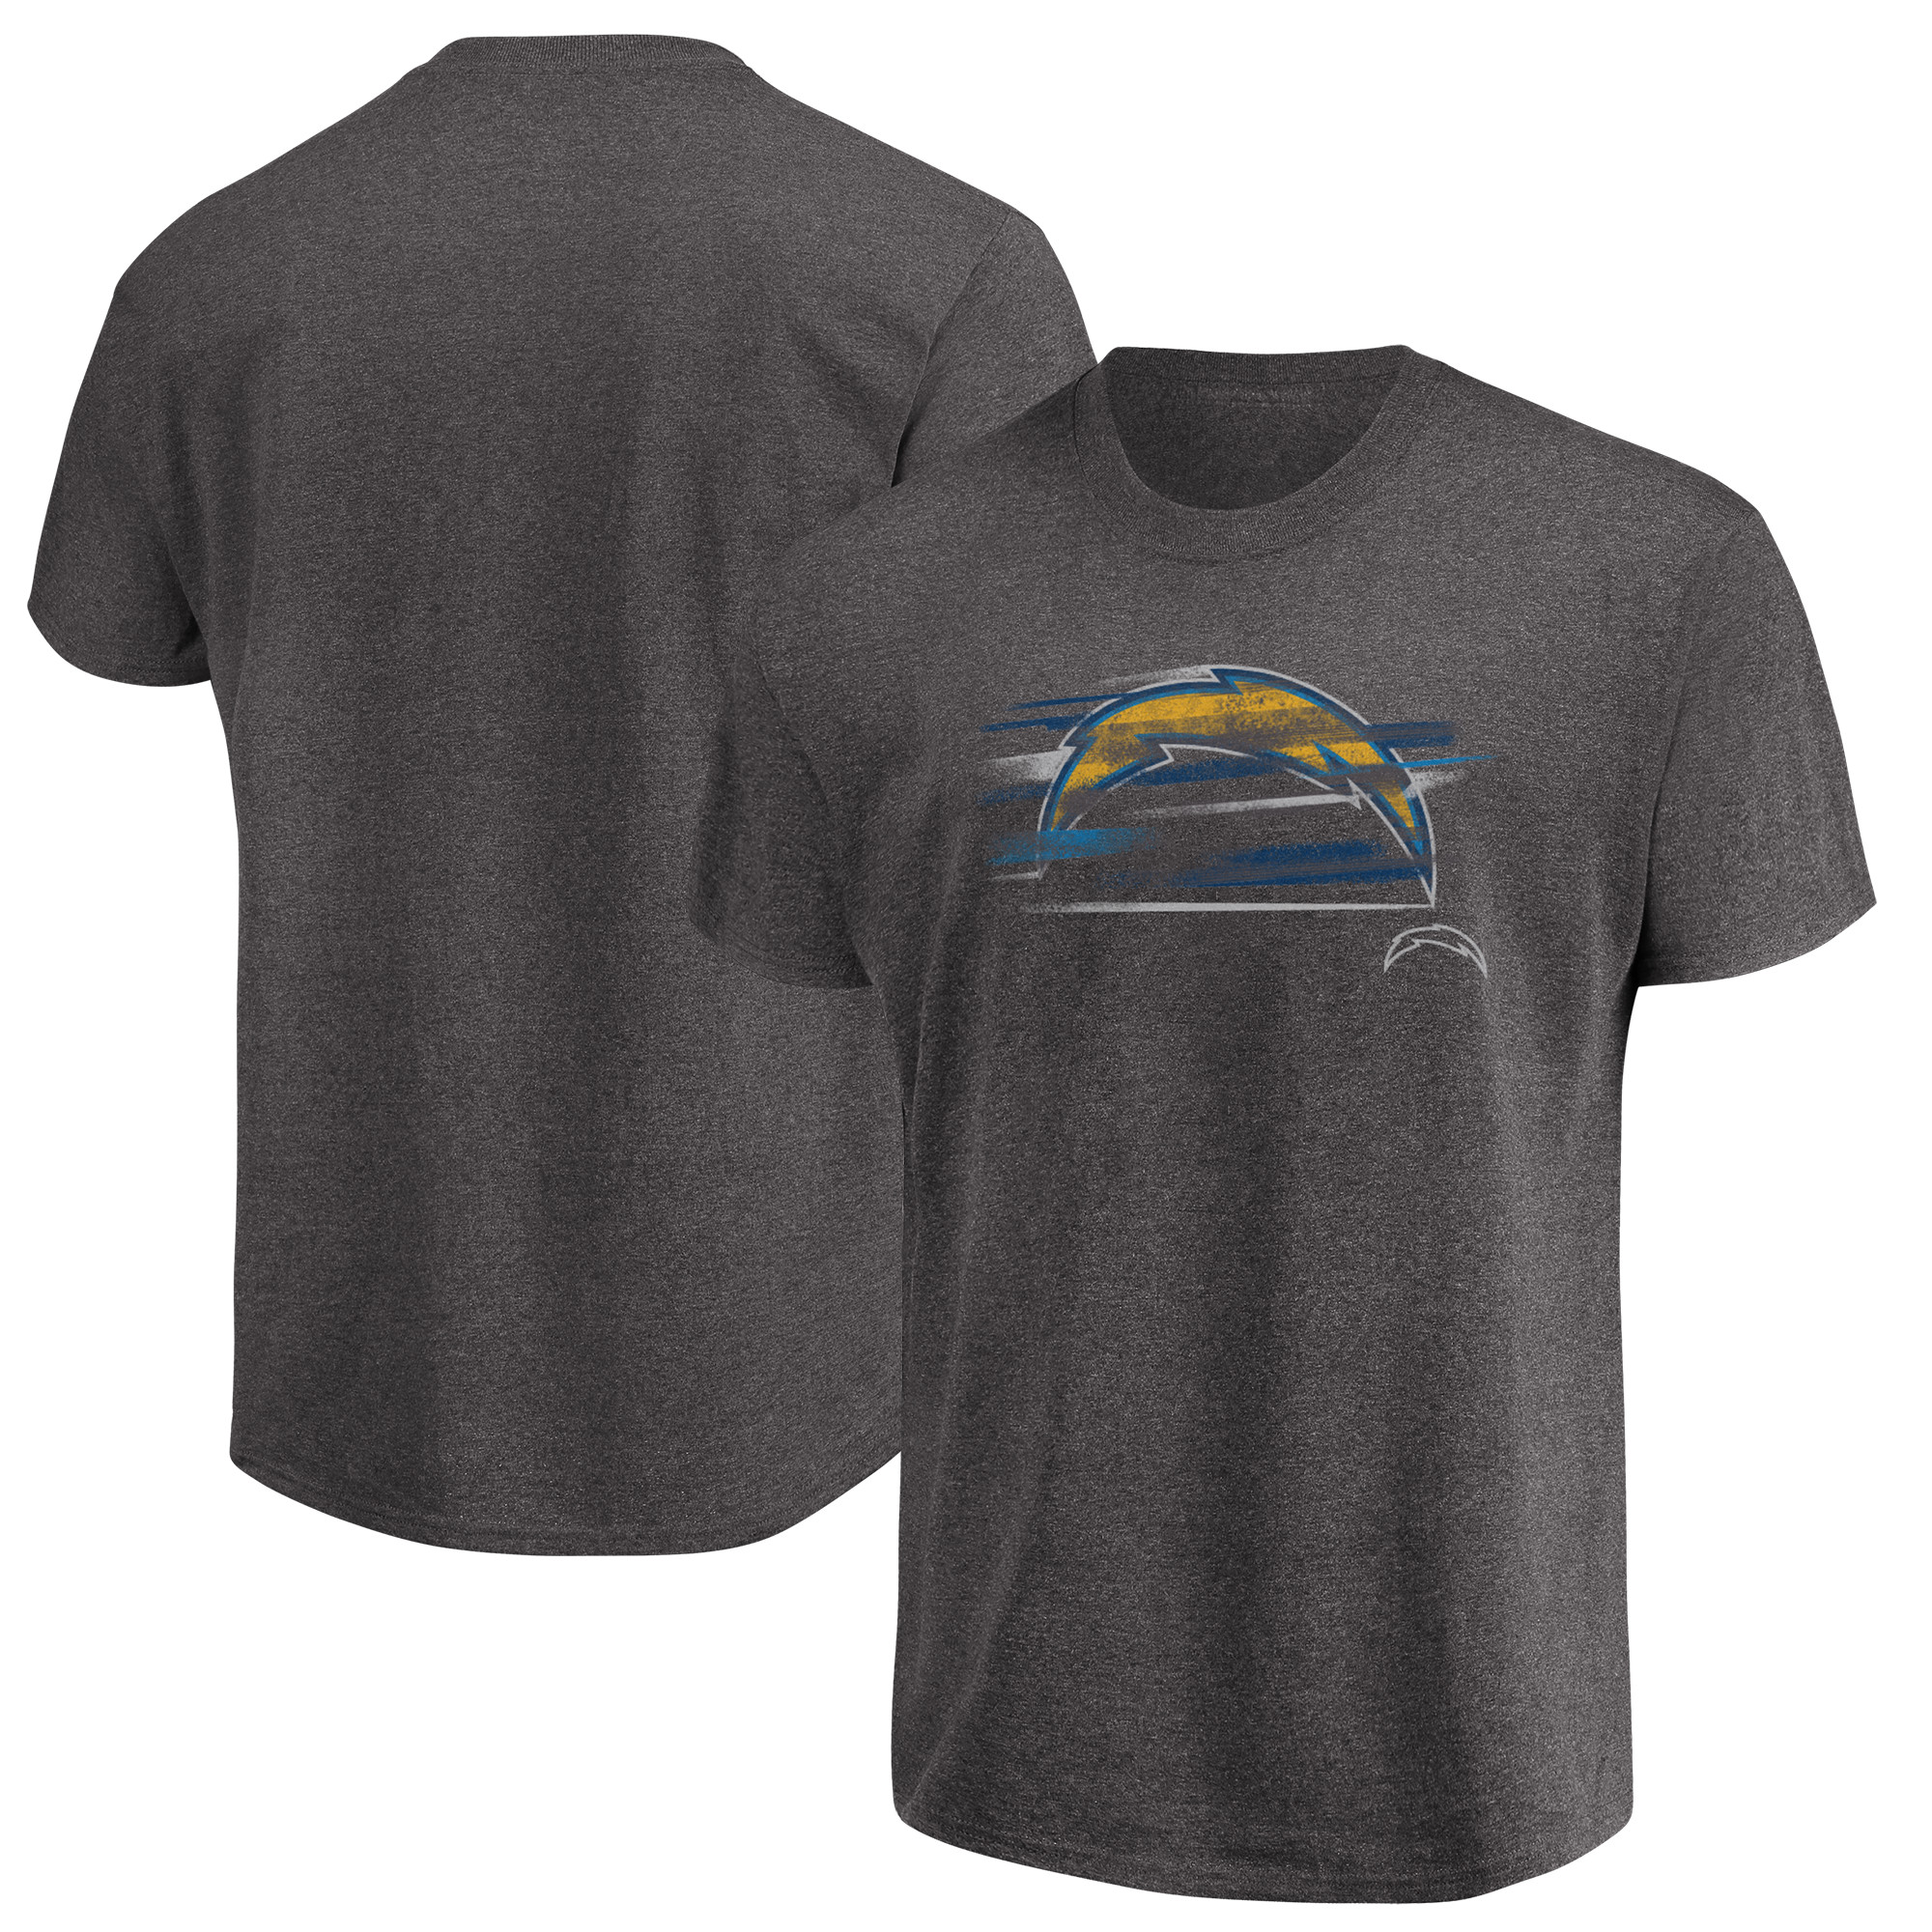 Los Angeles Chargers Majestic Big & Tall Fierce Intensity T-Shirt - Heathered Charcoal